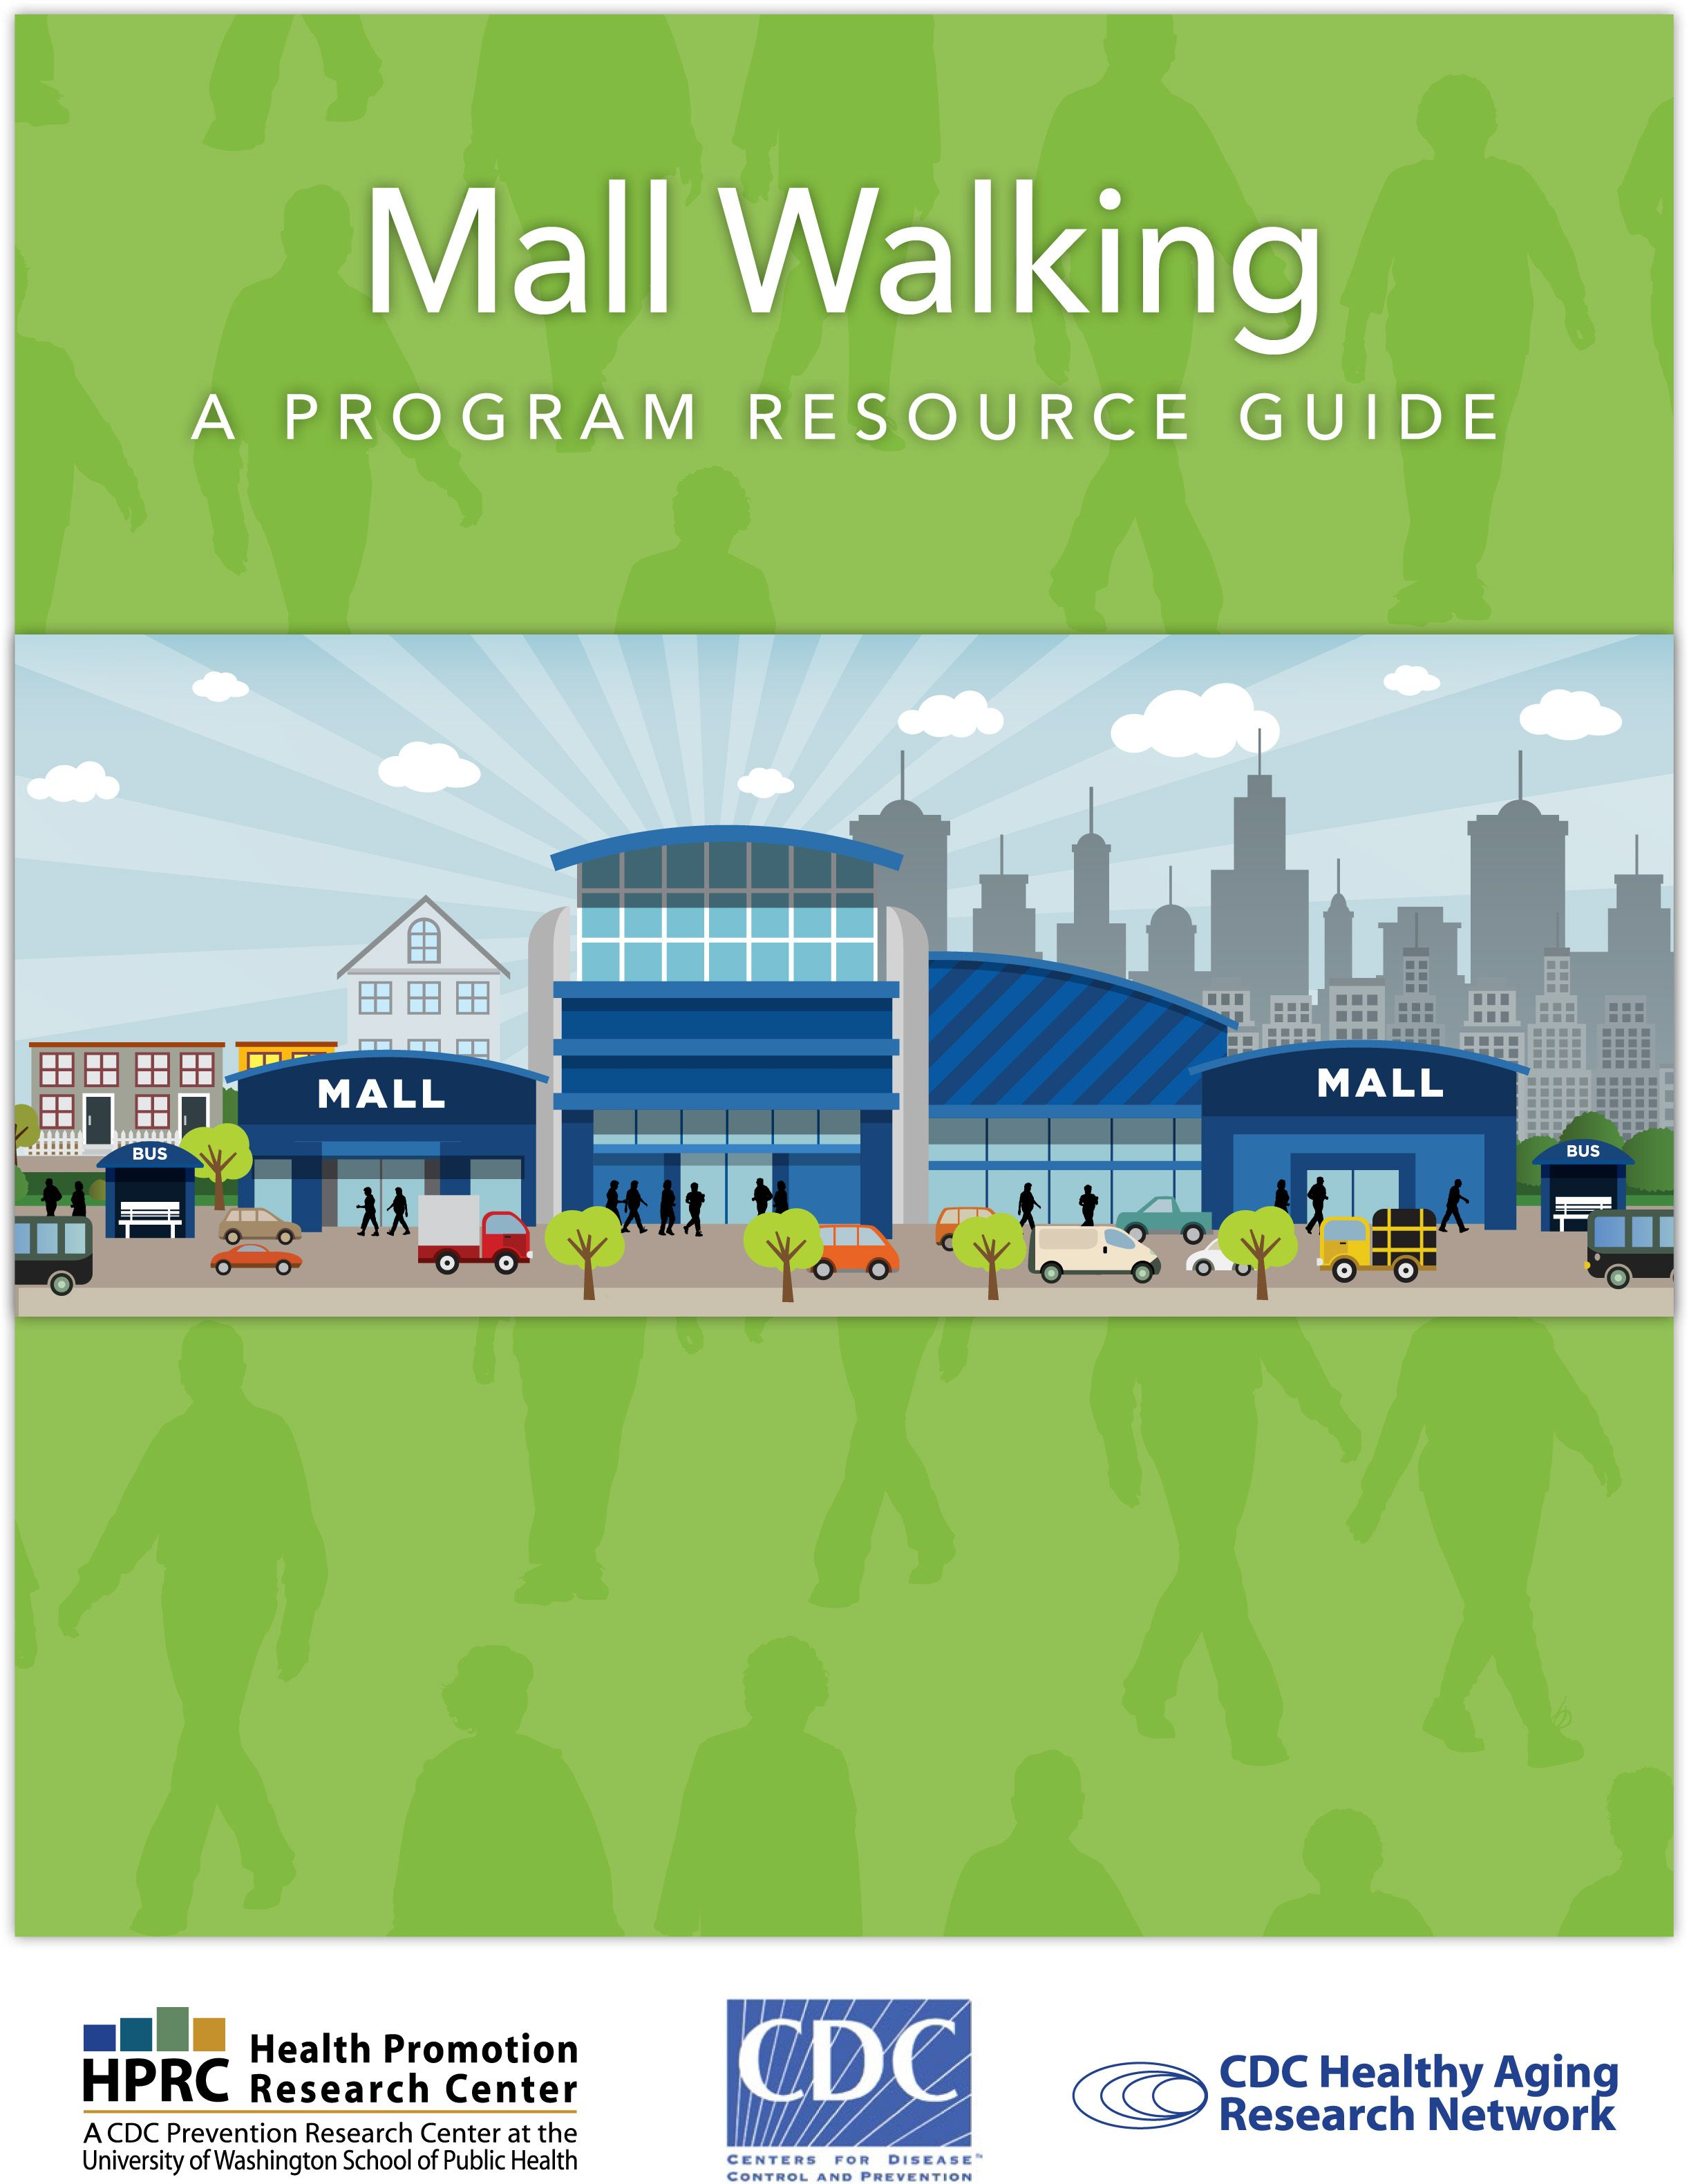 Mall walking a program resource guide is a new tool